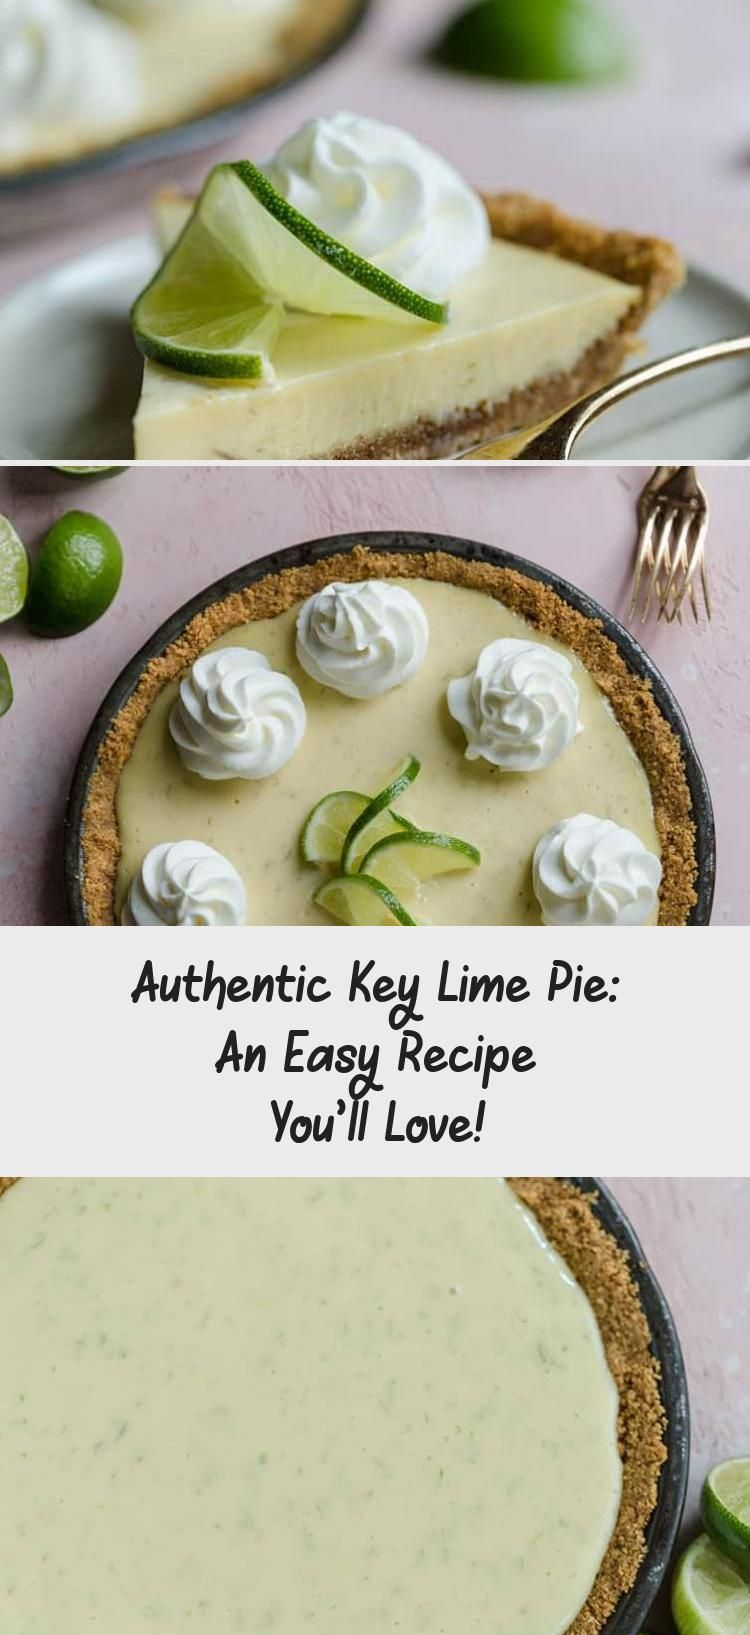 Quick And Easy Key Lime Pie Recipe Starts With A Graham Cracker Crust And Filling Of Egg Yolks Sweetened Con In 2020 Key Lime Pie Easy Authentic Key Lime Pie Lime Pie